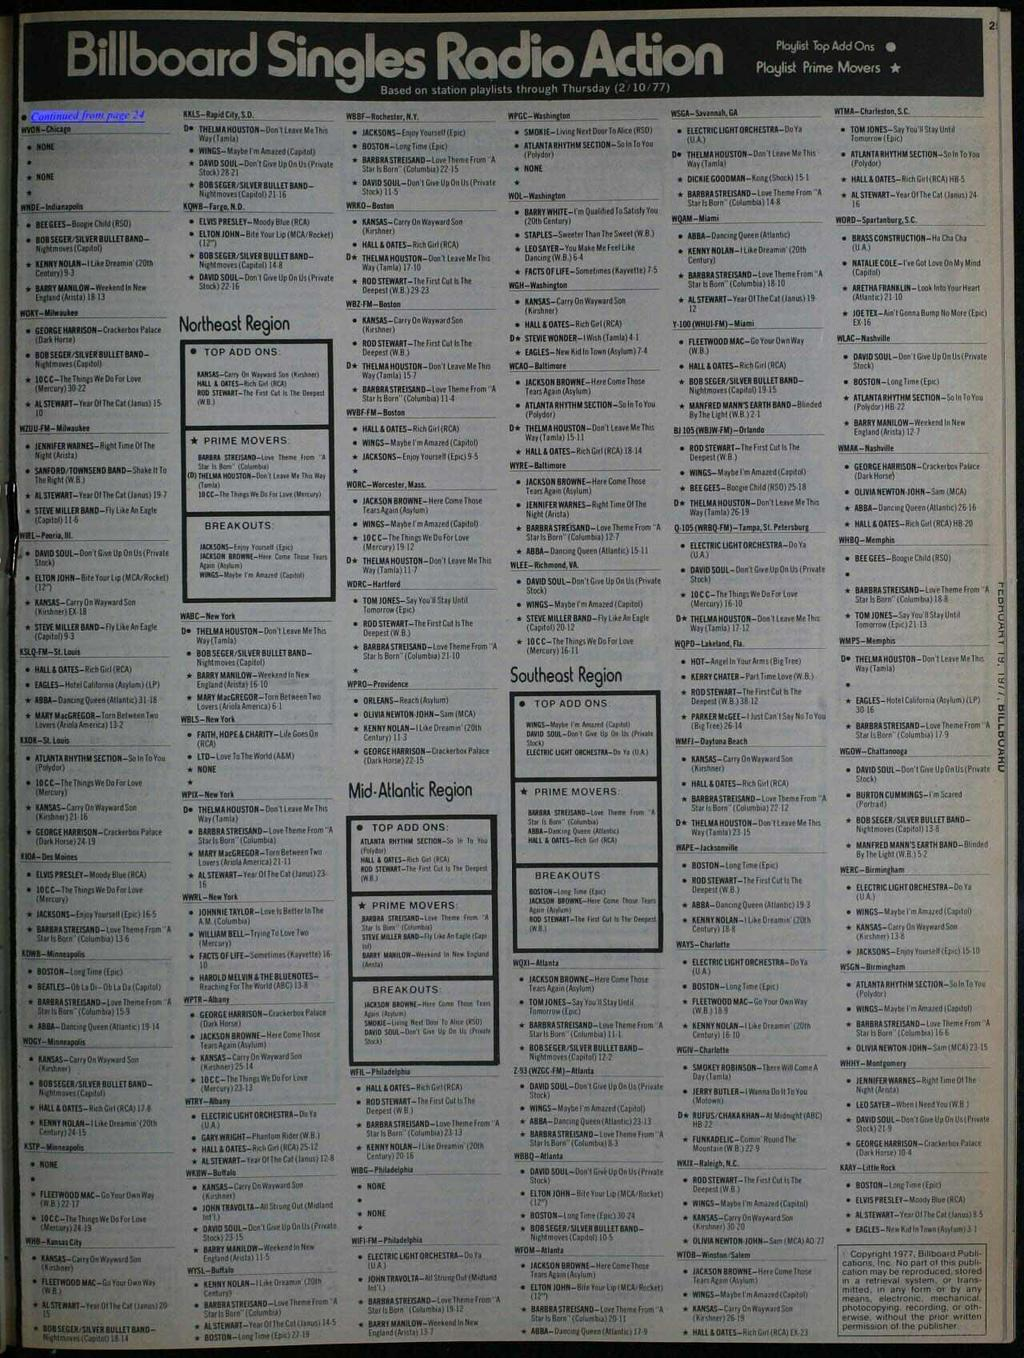 2: Billboard Sinales Radio Action Based on station playlists through Thursday (2/10/77) Ploylist Top Add Ons Ploylist Prime Movers * Contznrzr/ from :4 WVON- Chiago NONE NONE NDE- ndunapdö BEE GEES-